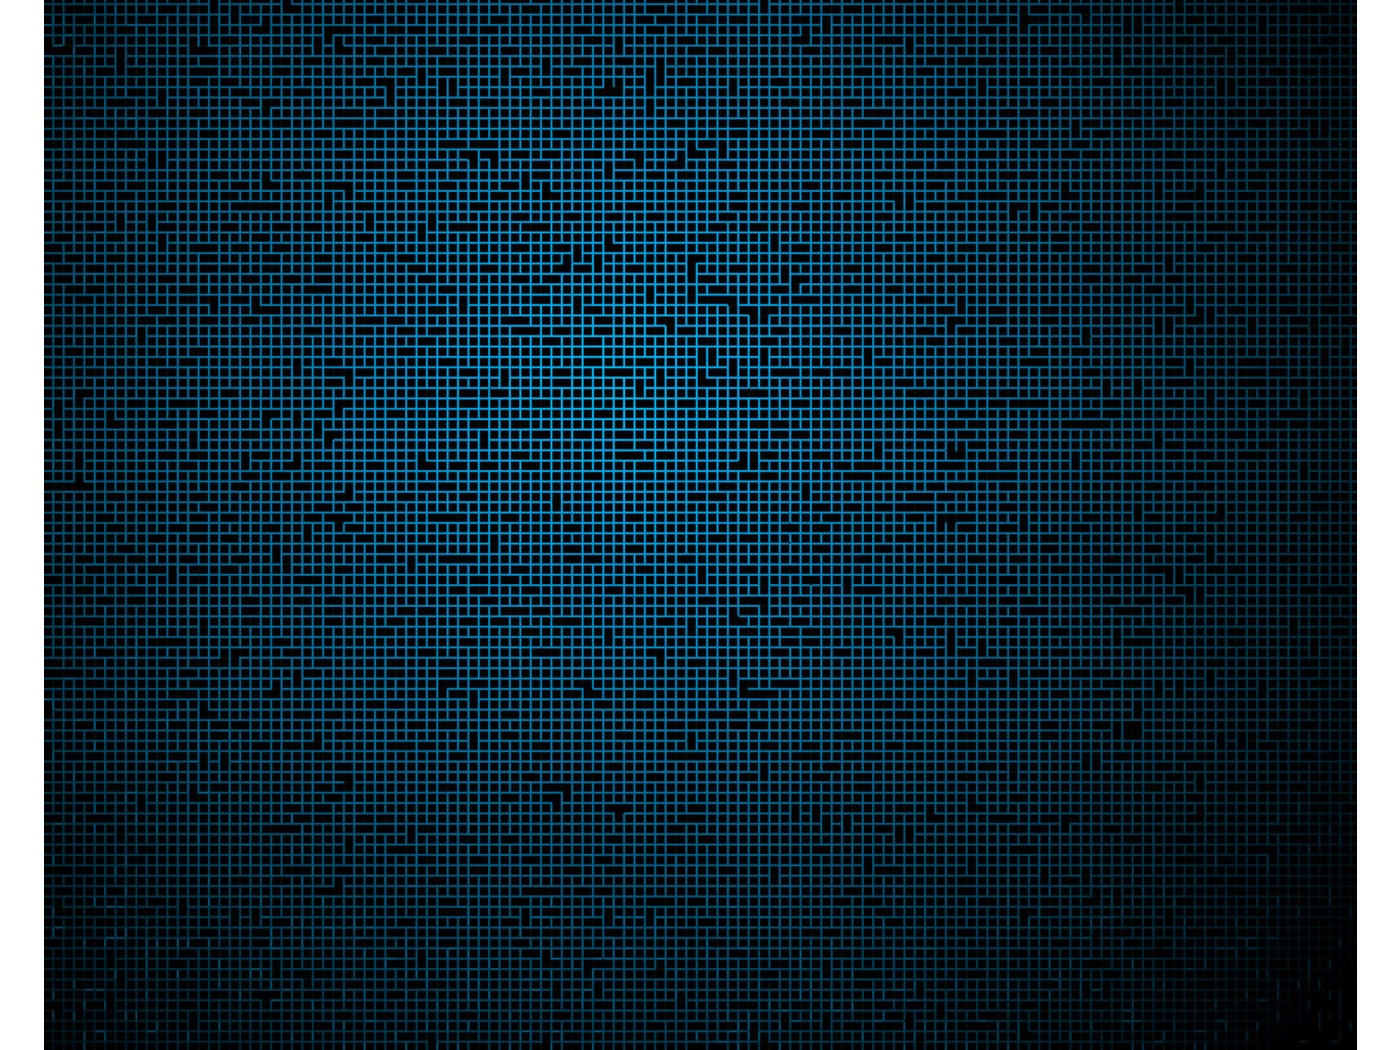 Blue checkered abstract 1400 x 1050 download close